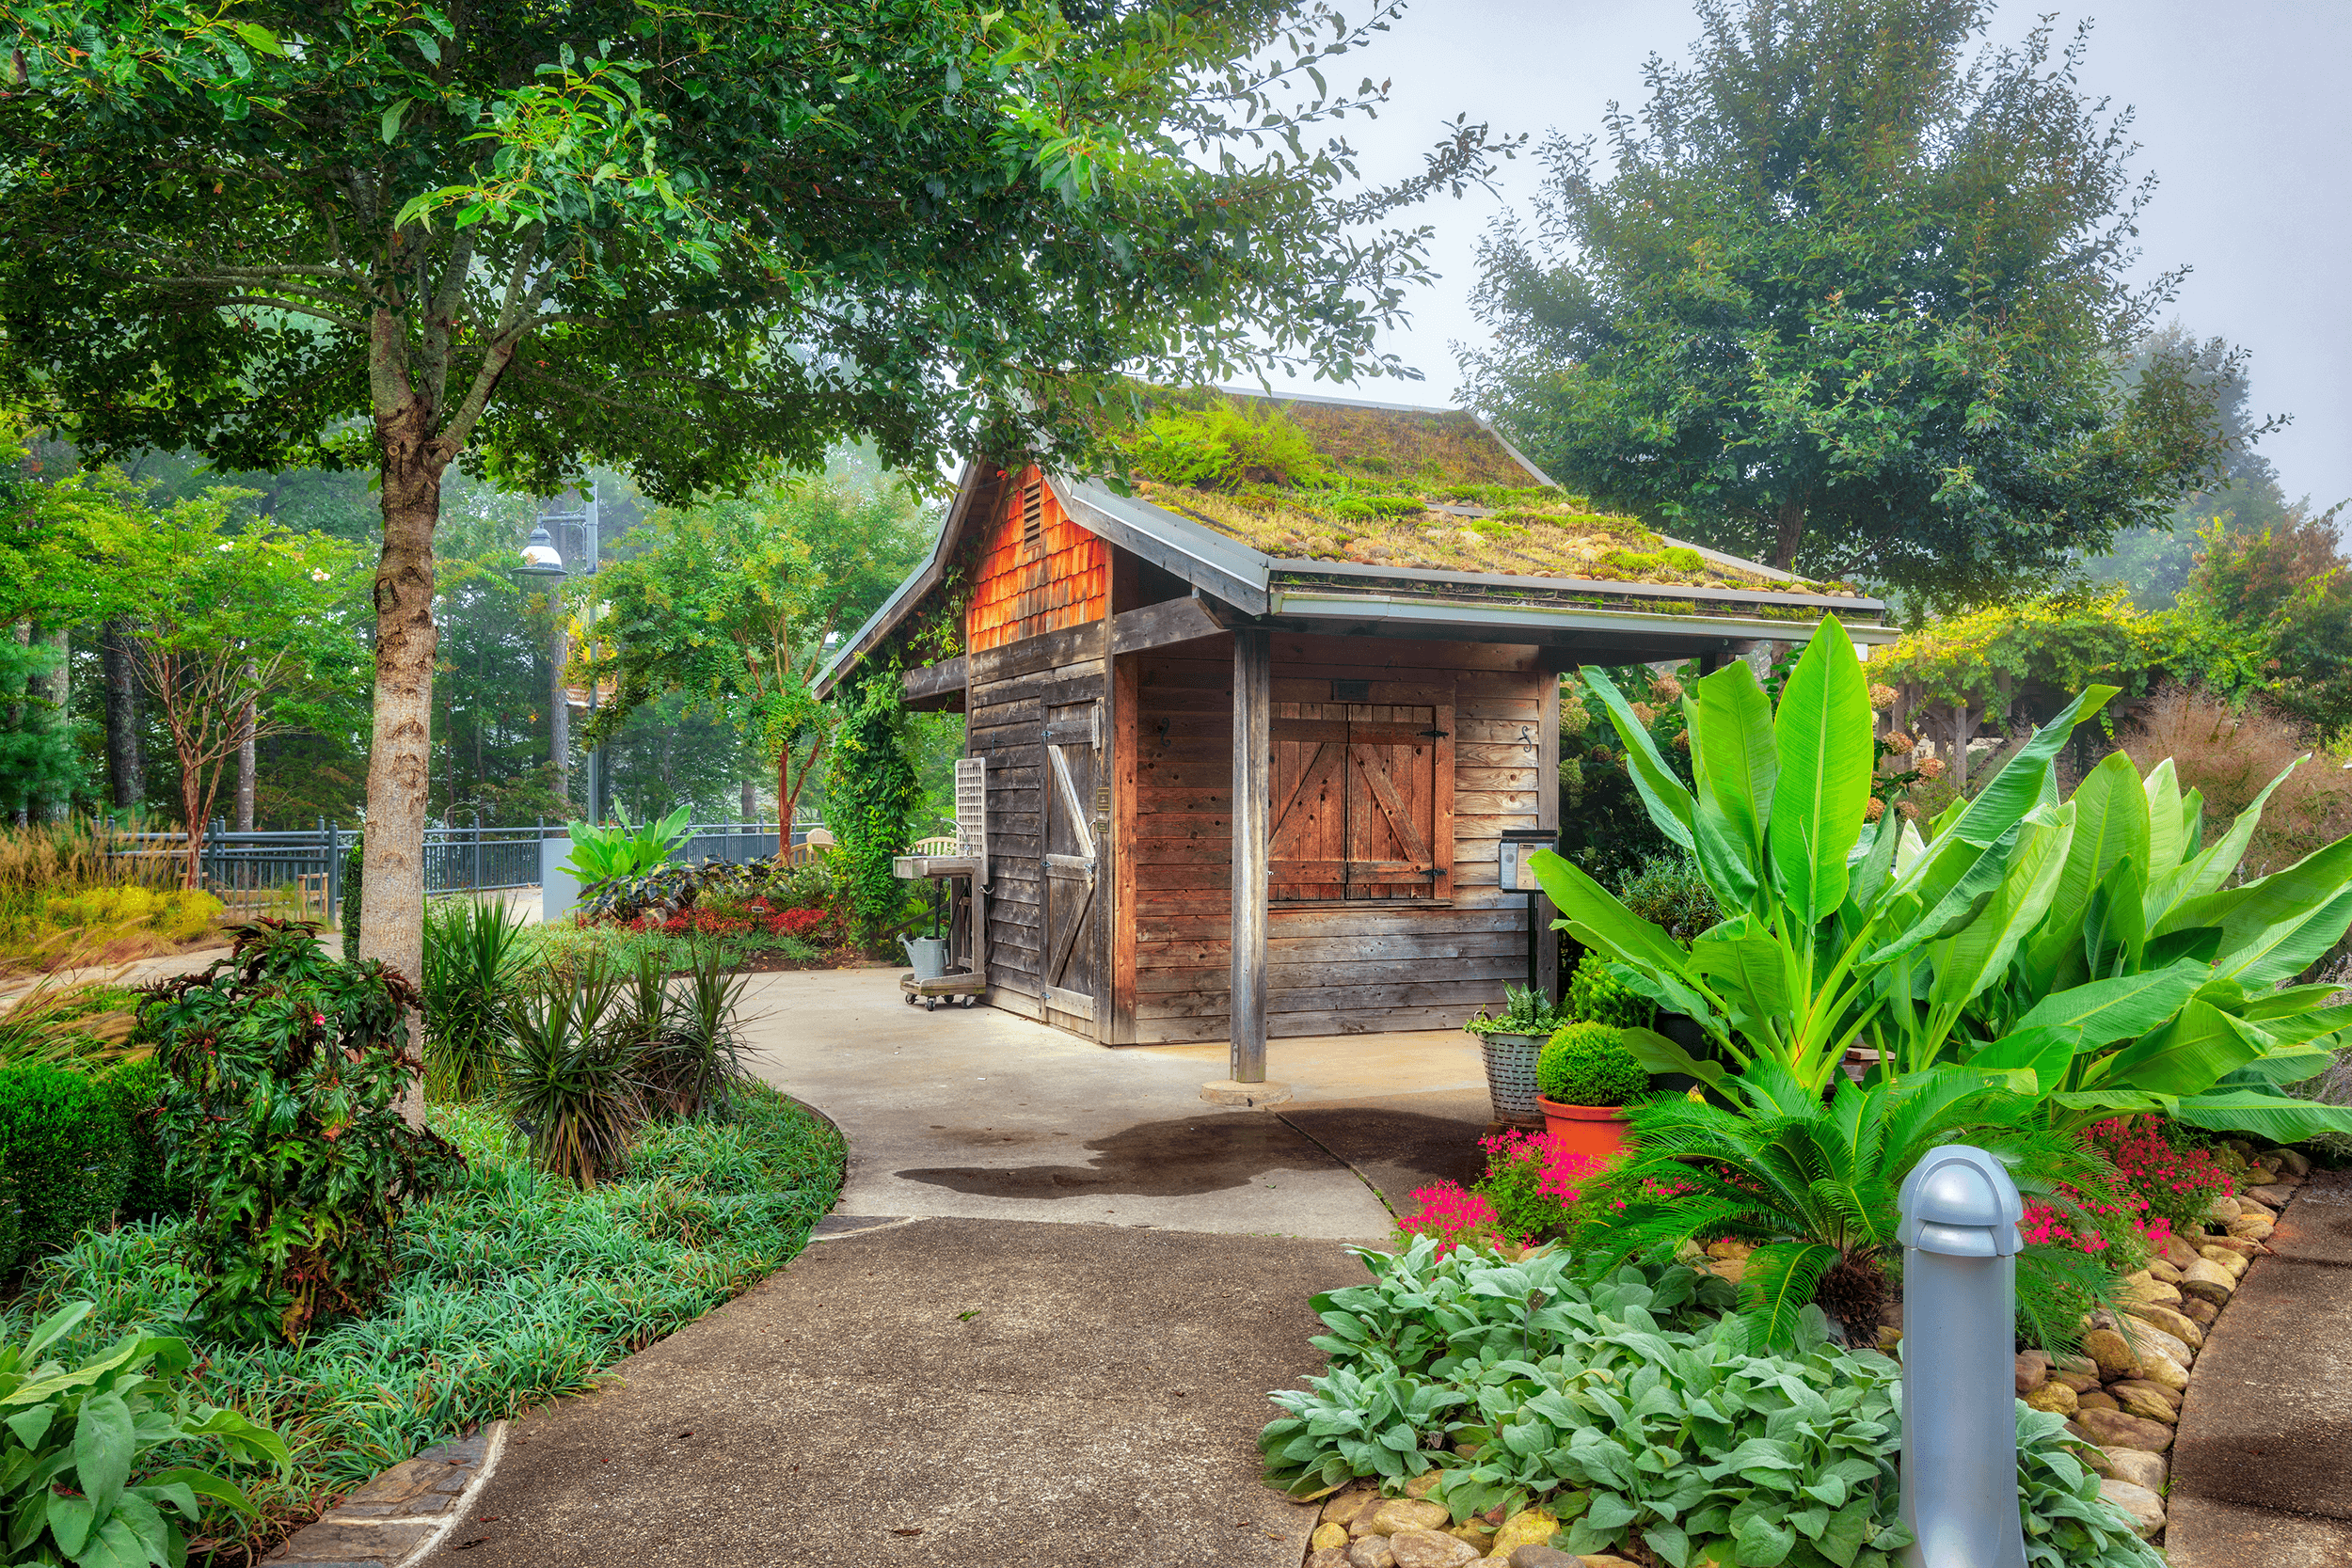 The rising sun on a foggy morning can immerse the gardens in a mystical light. The  Gardener's Green Shed  with its moss green roof is located by the  Baker Landscape  garden area.